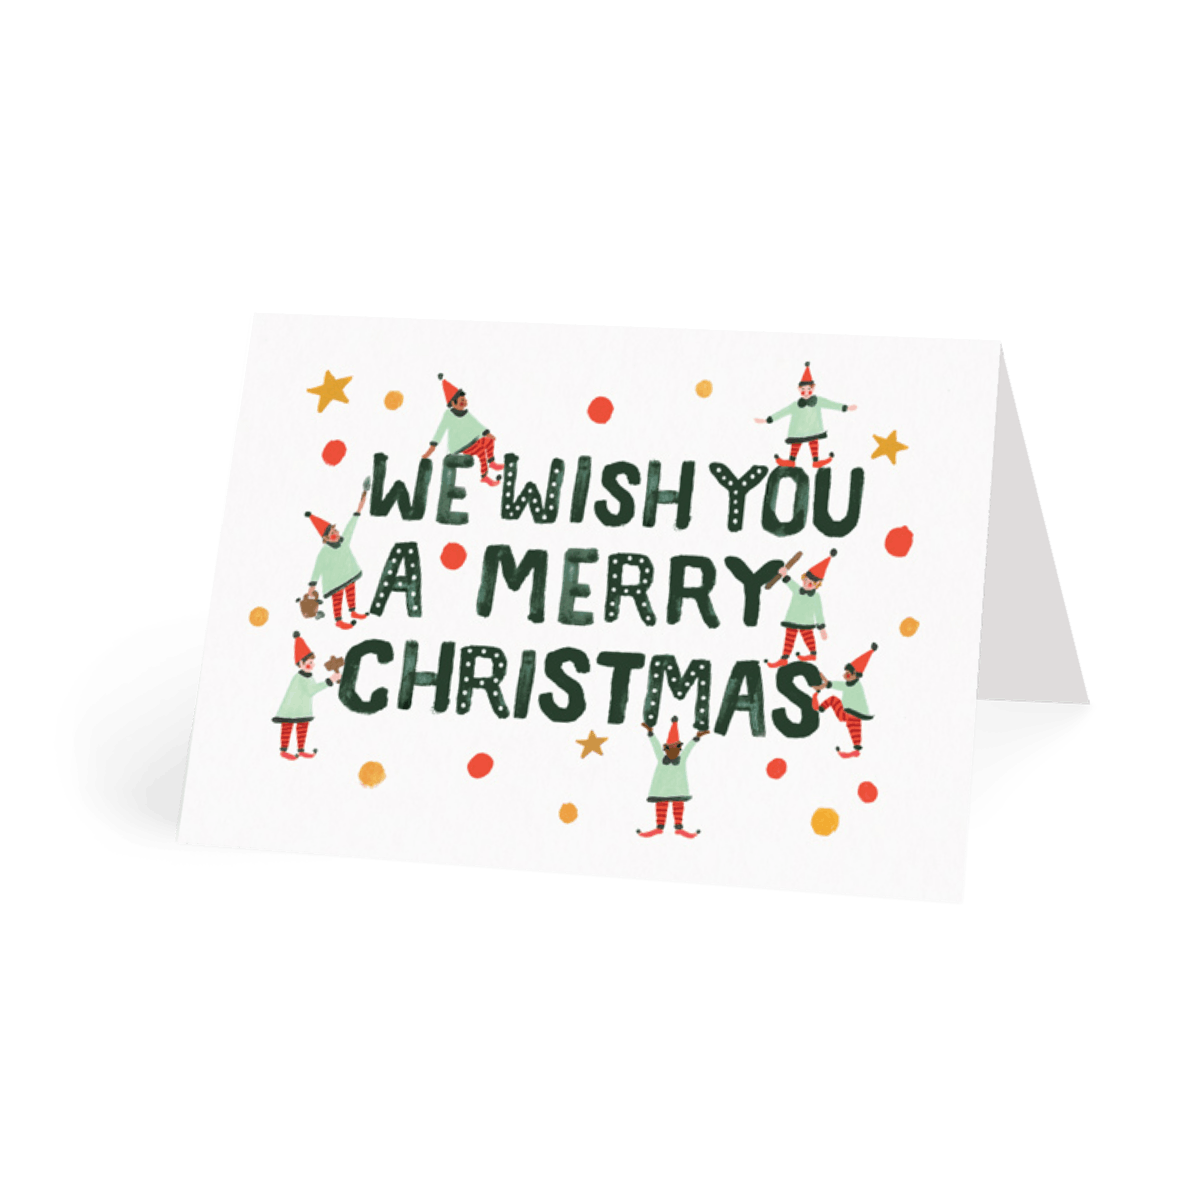 Https%3a%2f%2fwww.papier.com%2fproduct image%2f93413%2f14%2fmerry christmas elves 23362 front 1571674829.png?ixlib=rb 1.1